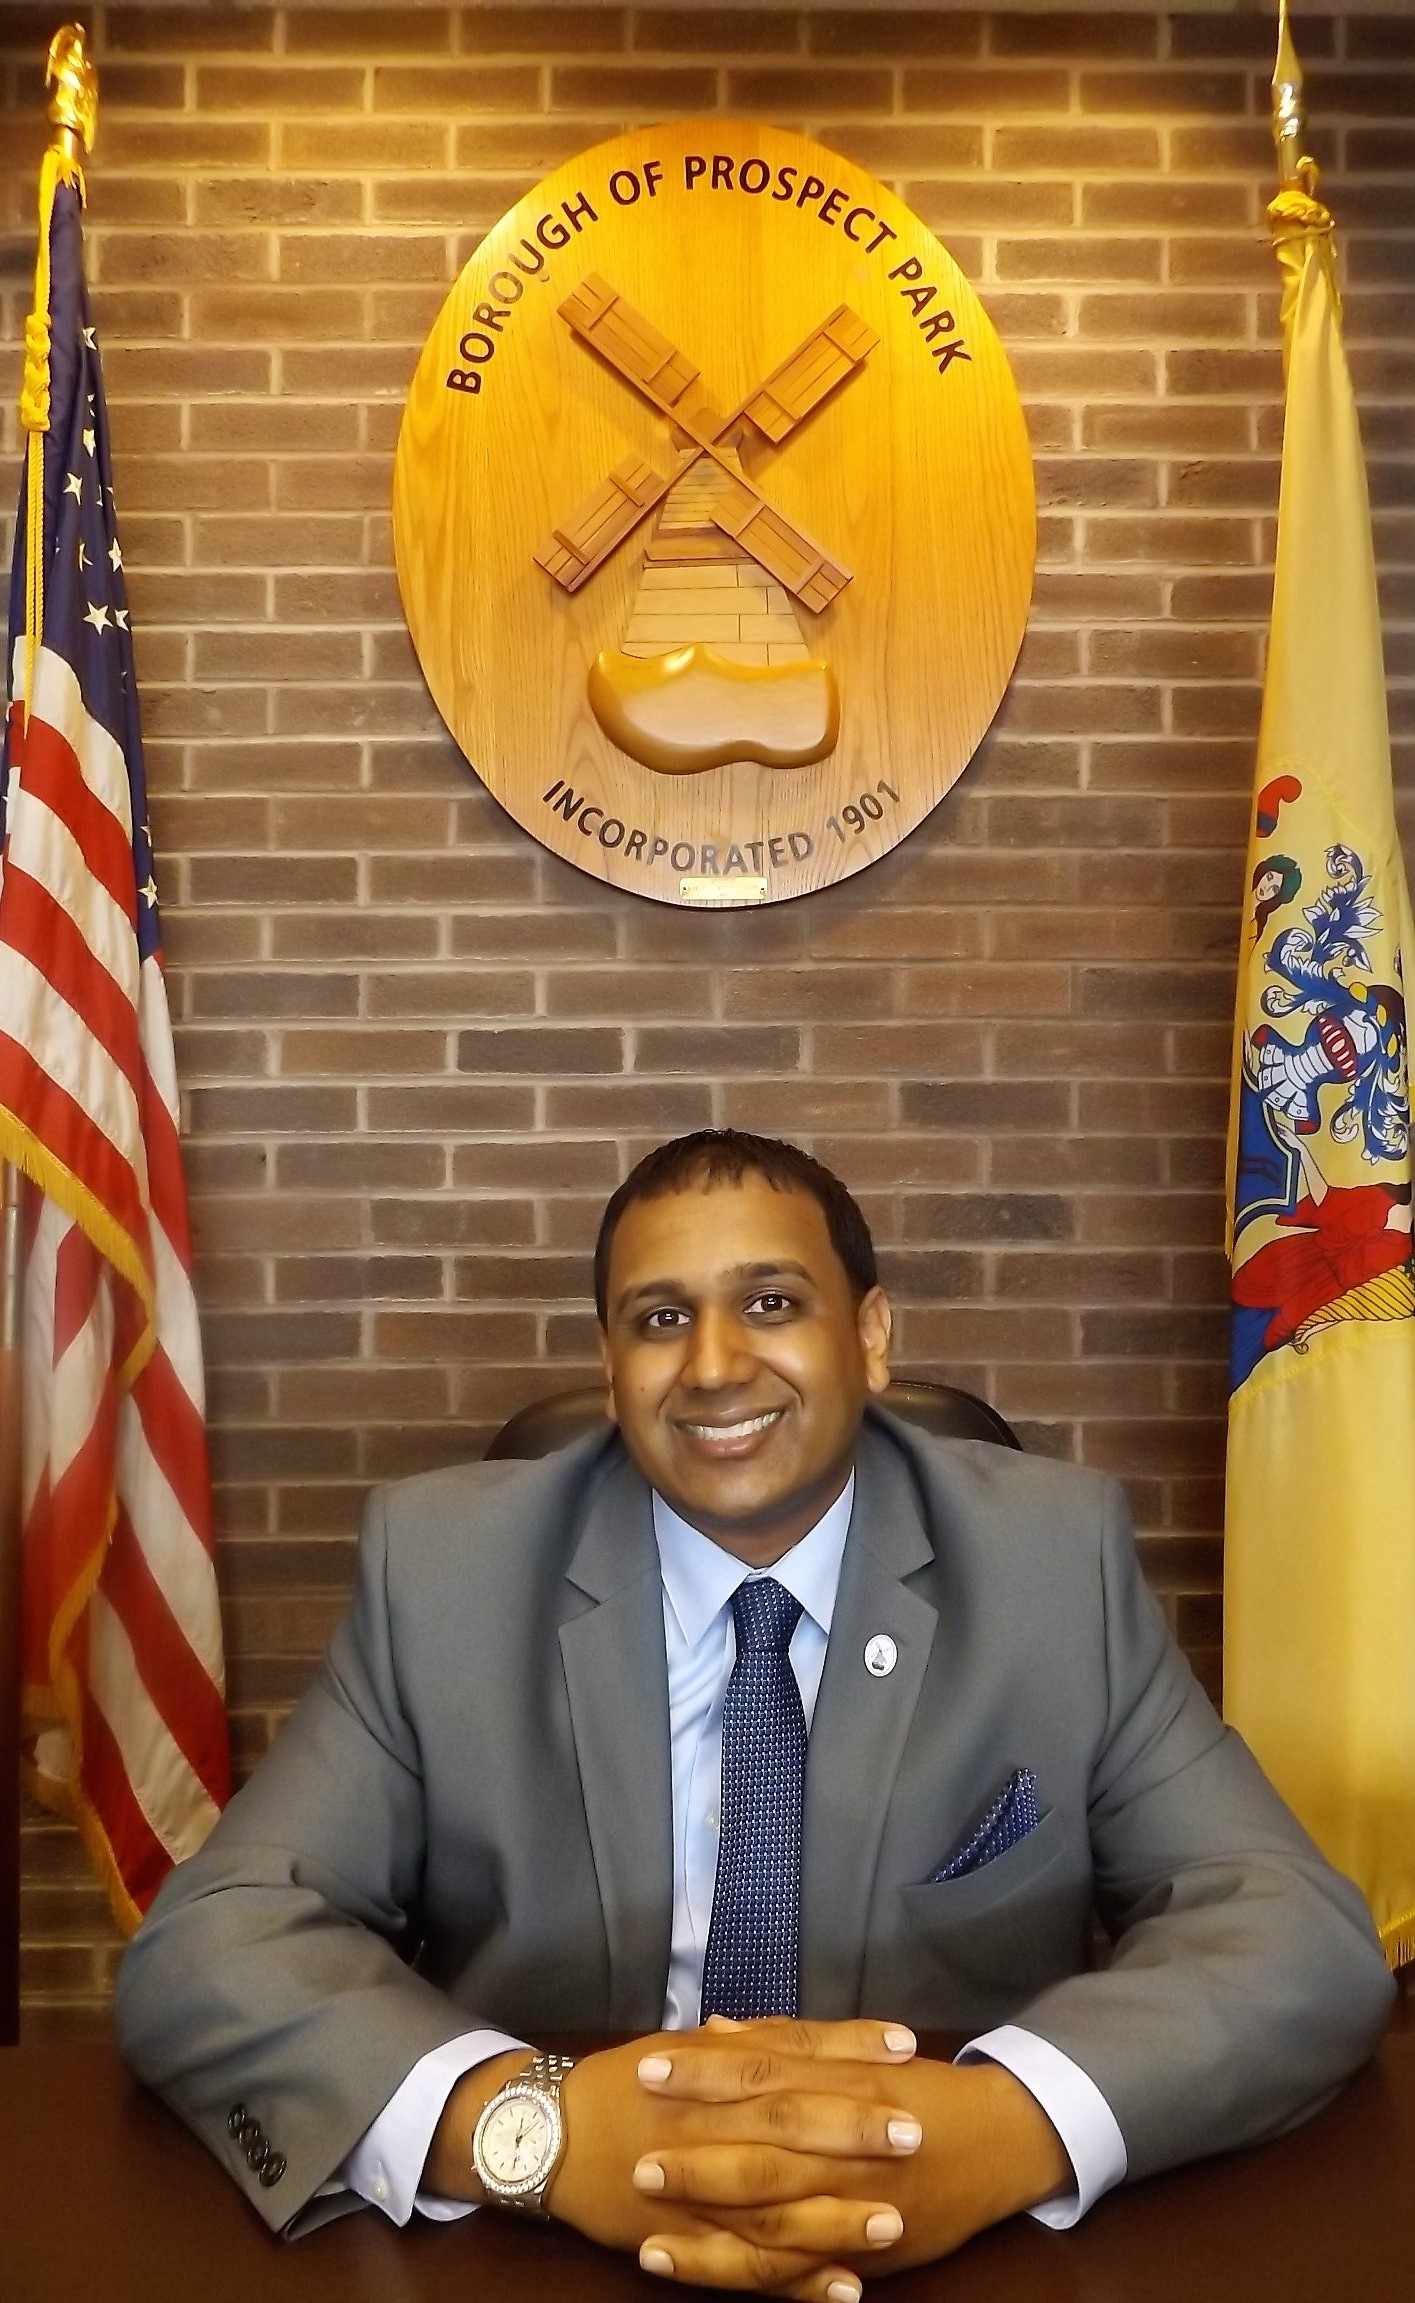 Anand Shah was recently elected in Prospect Park, NJ.